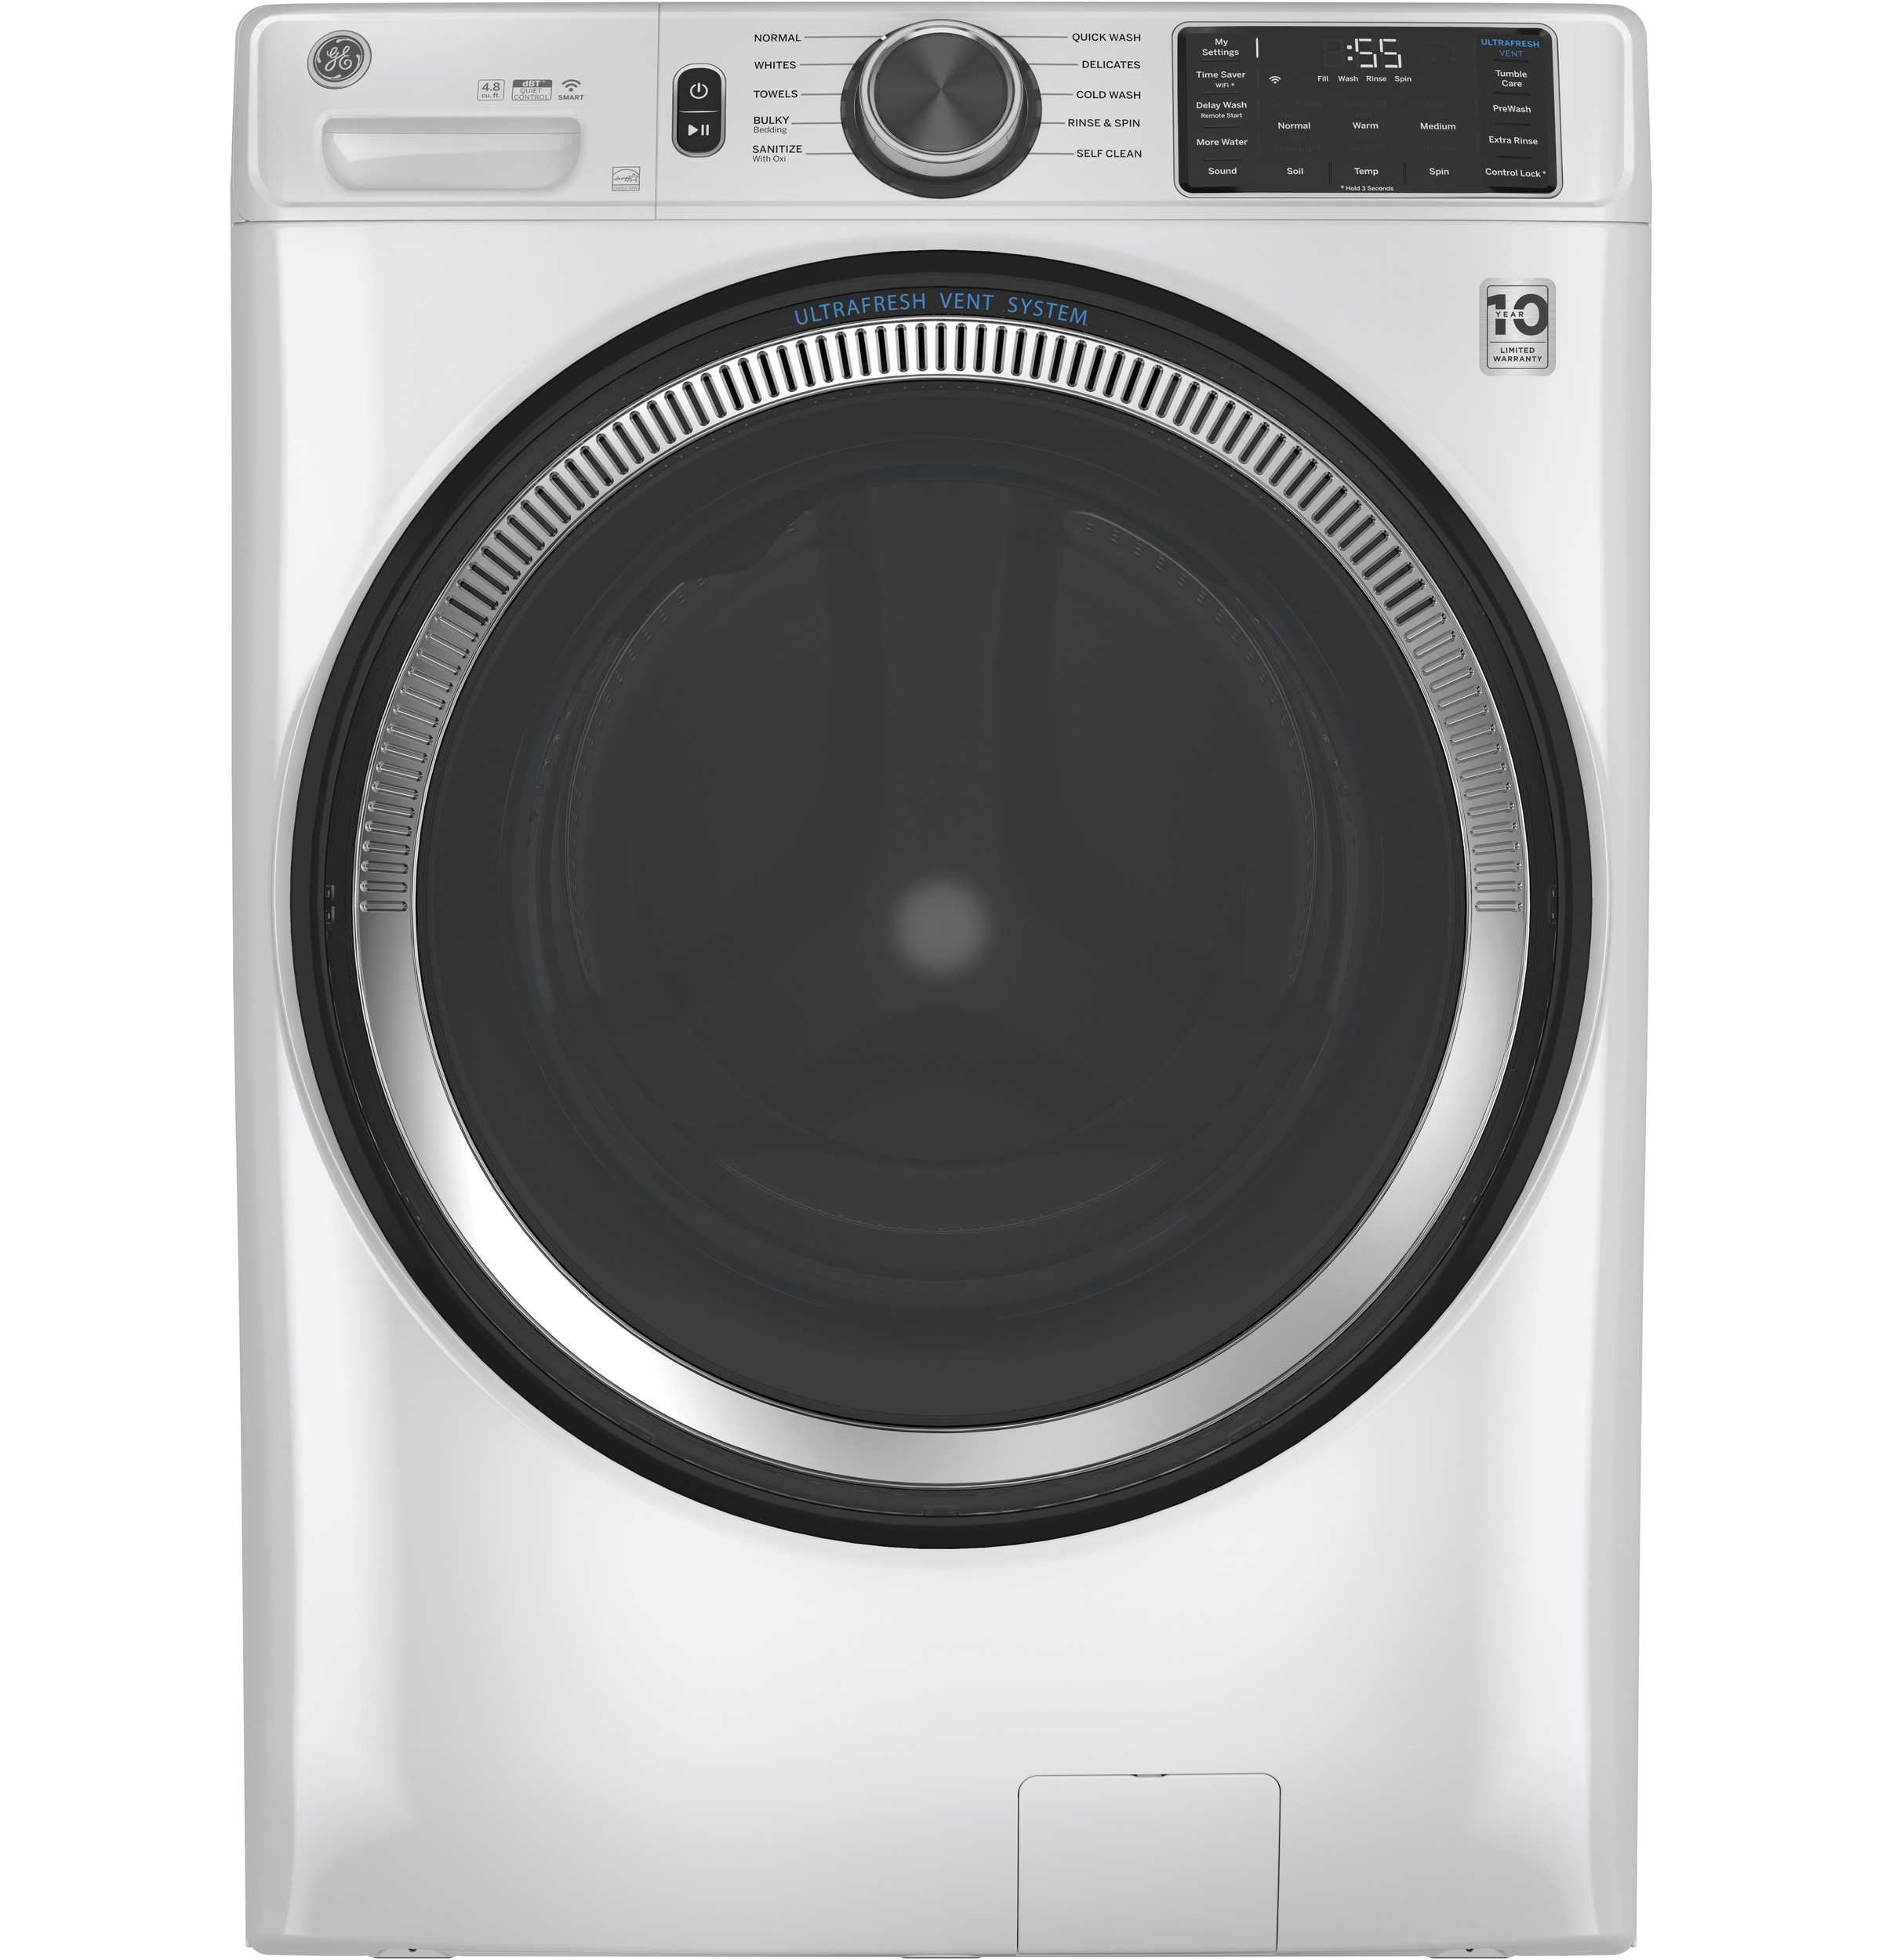 GE GE® 4.8 cu. ft. Capacity Smart Front Load ENERGY STAR® Washer with UltraFresh Vent System with OdorBlock™ and Sanitize w/Oxi